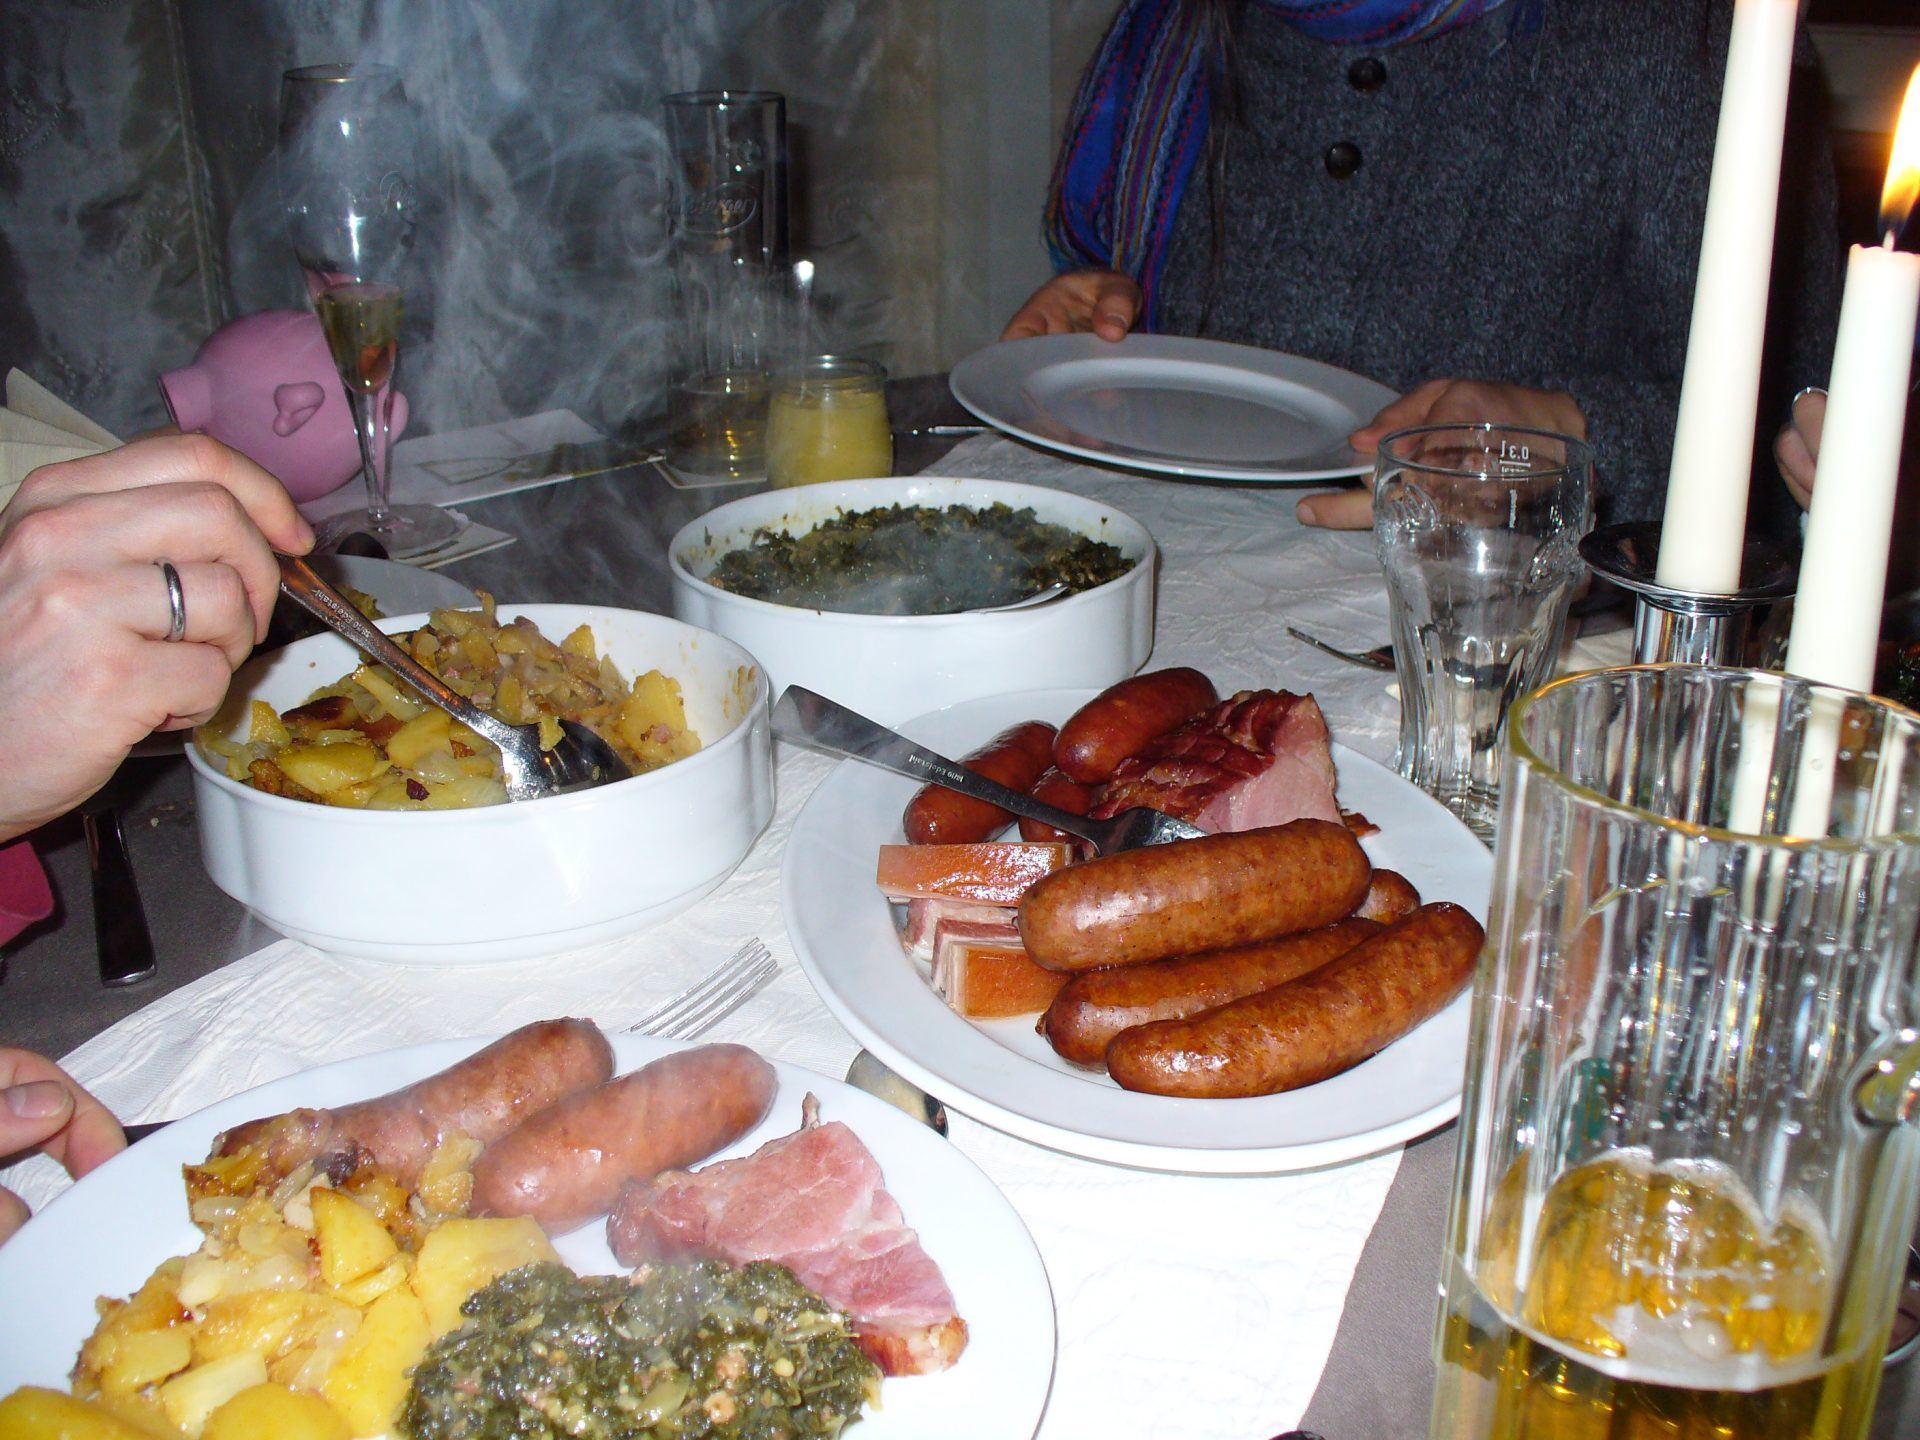 """Our traditional northern German dinner after the """"kale walk"""", including two types of German sausages (Pinkel and Kochwurs), potatoes, and (of course!) kale! Feb 2013. Photo by Silvia Kempen."""